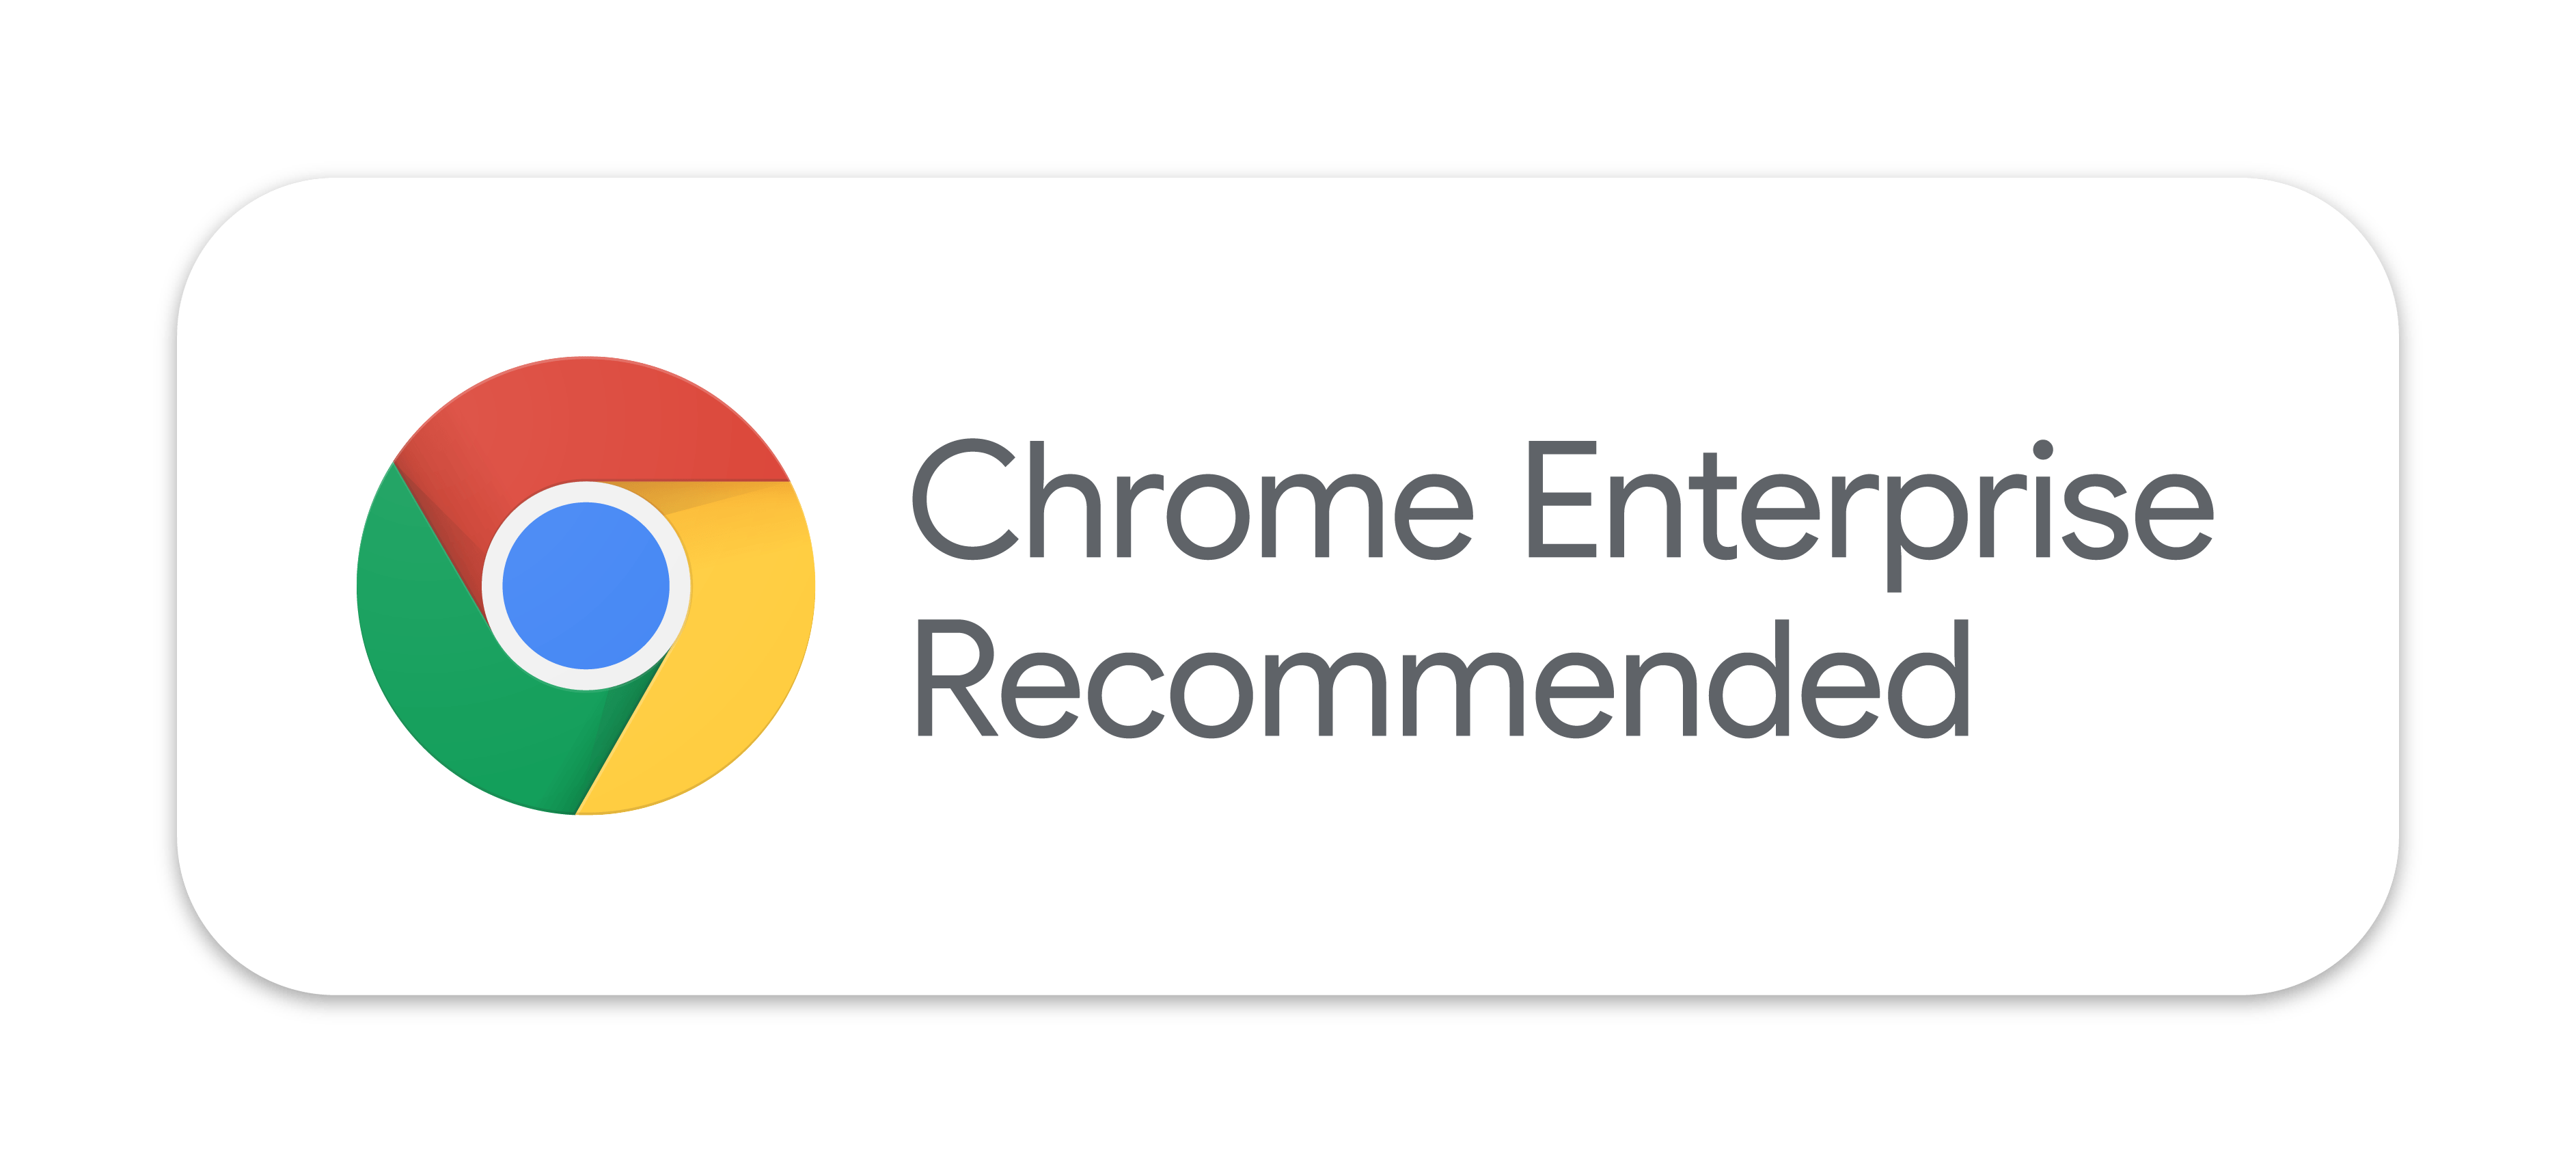 Chrome Enterprise Recommended